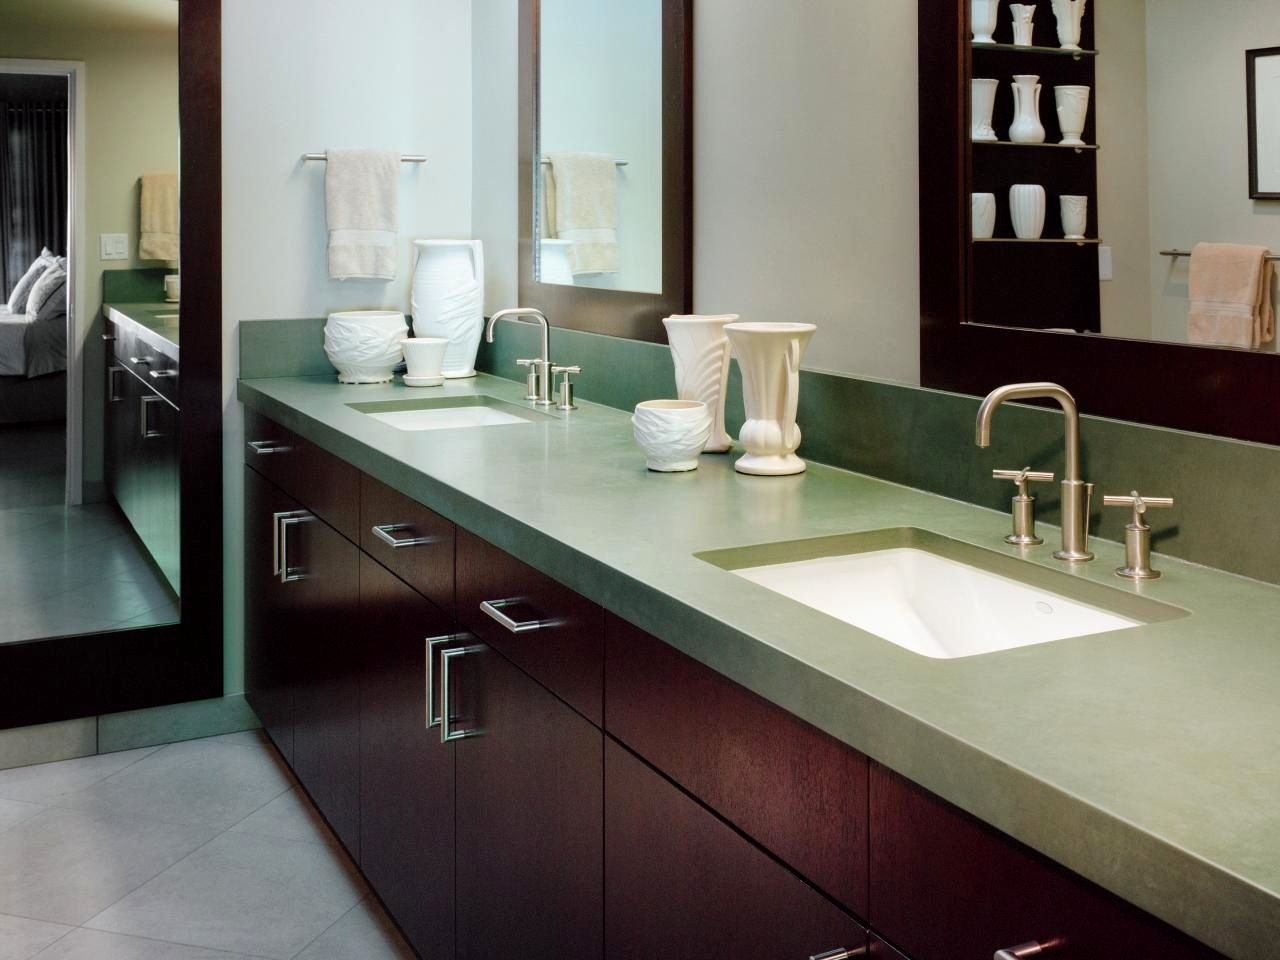 best of bathroom mirror cabinets ideas-Fascinating Bathroom Mirror Cabinets Construction